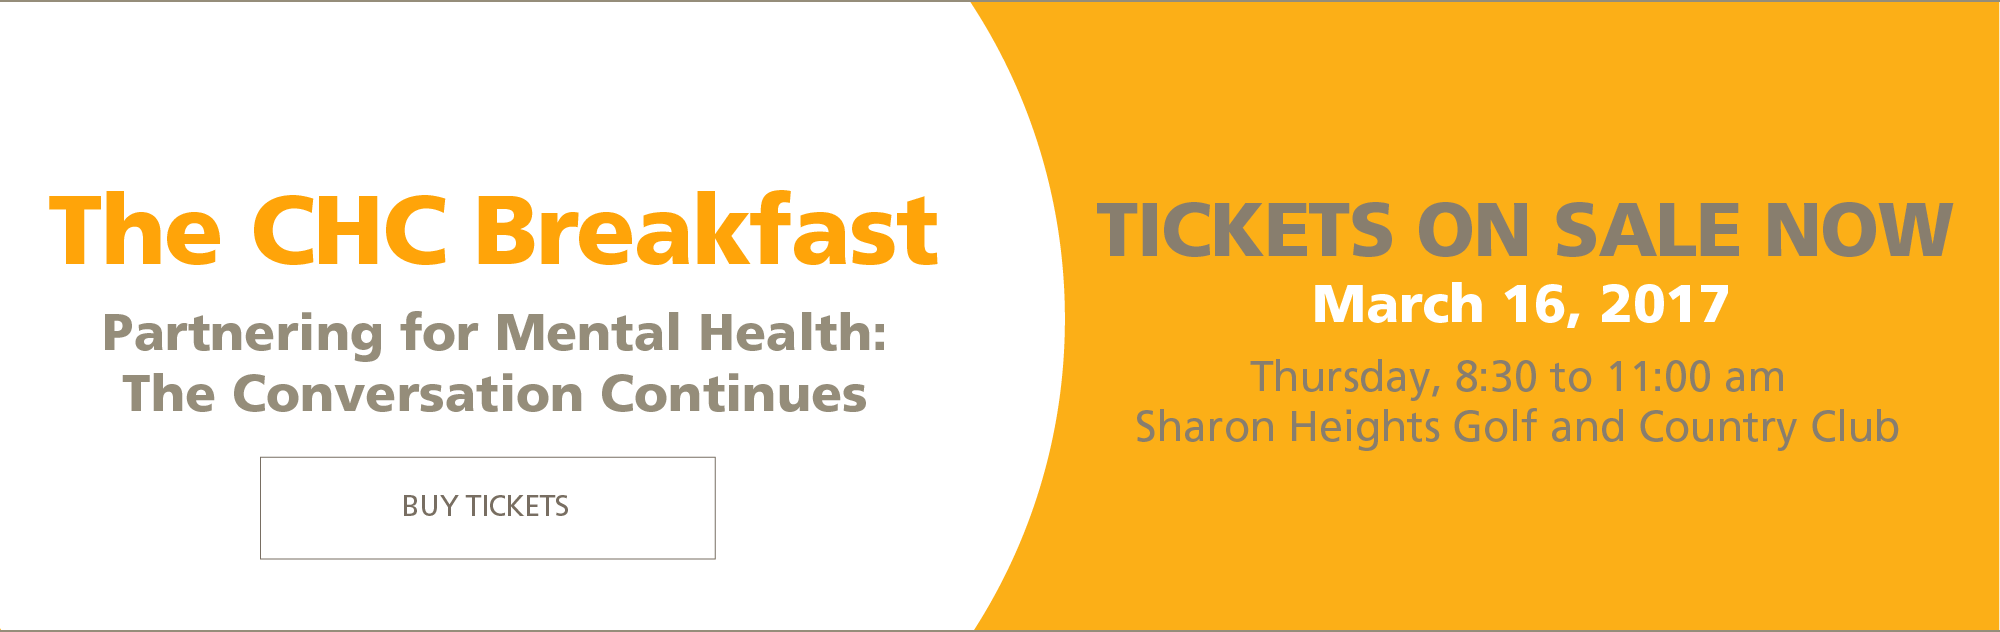 Buy Tickets to the CHC Breakfast